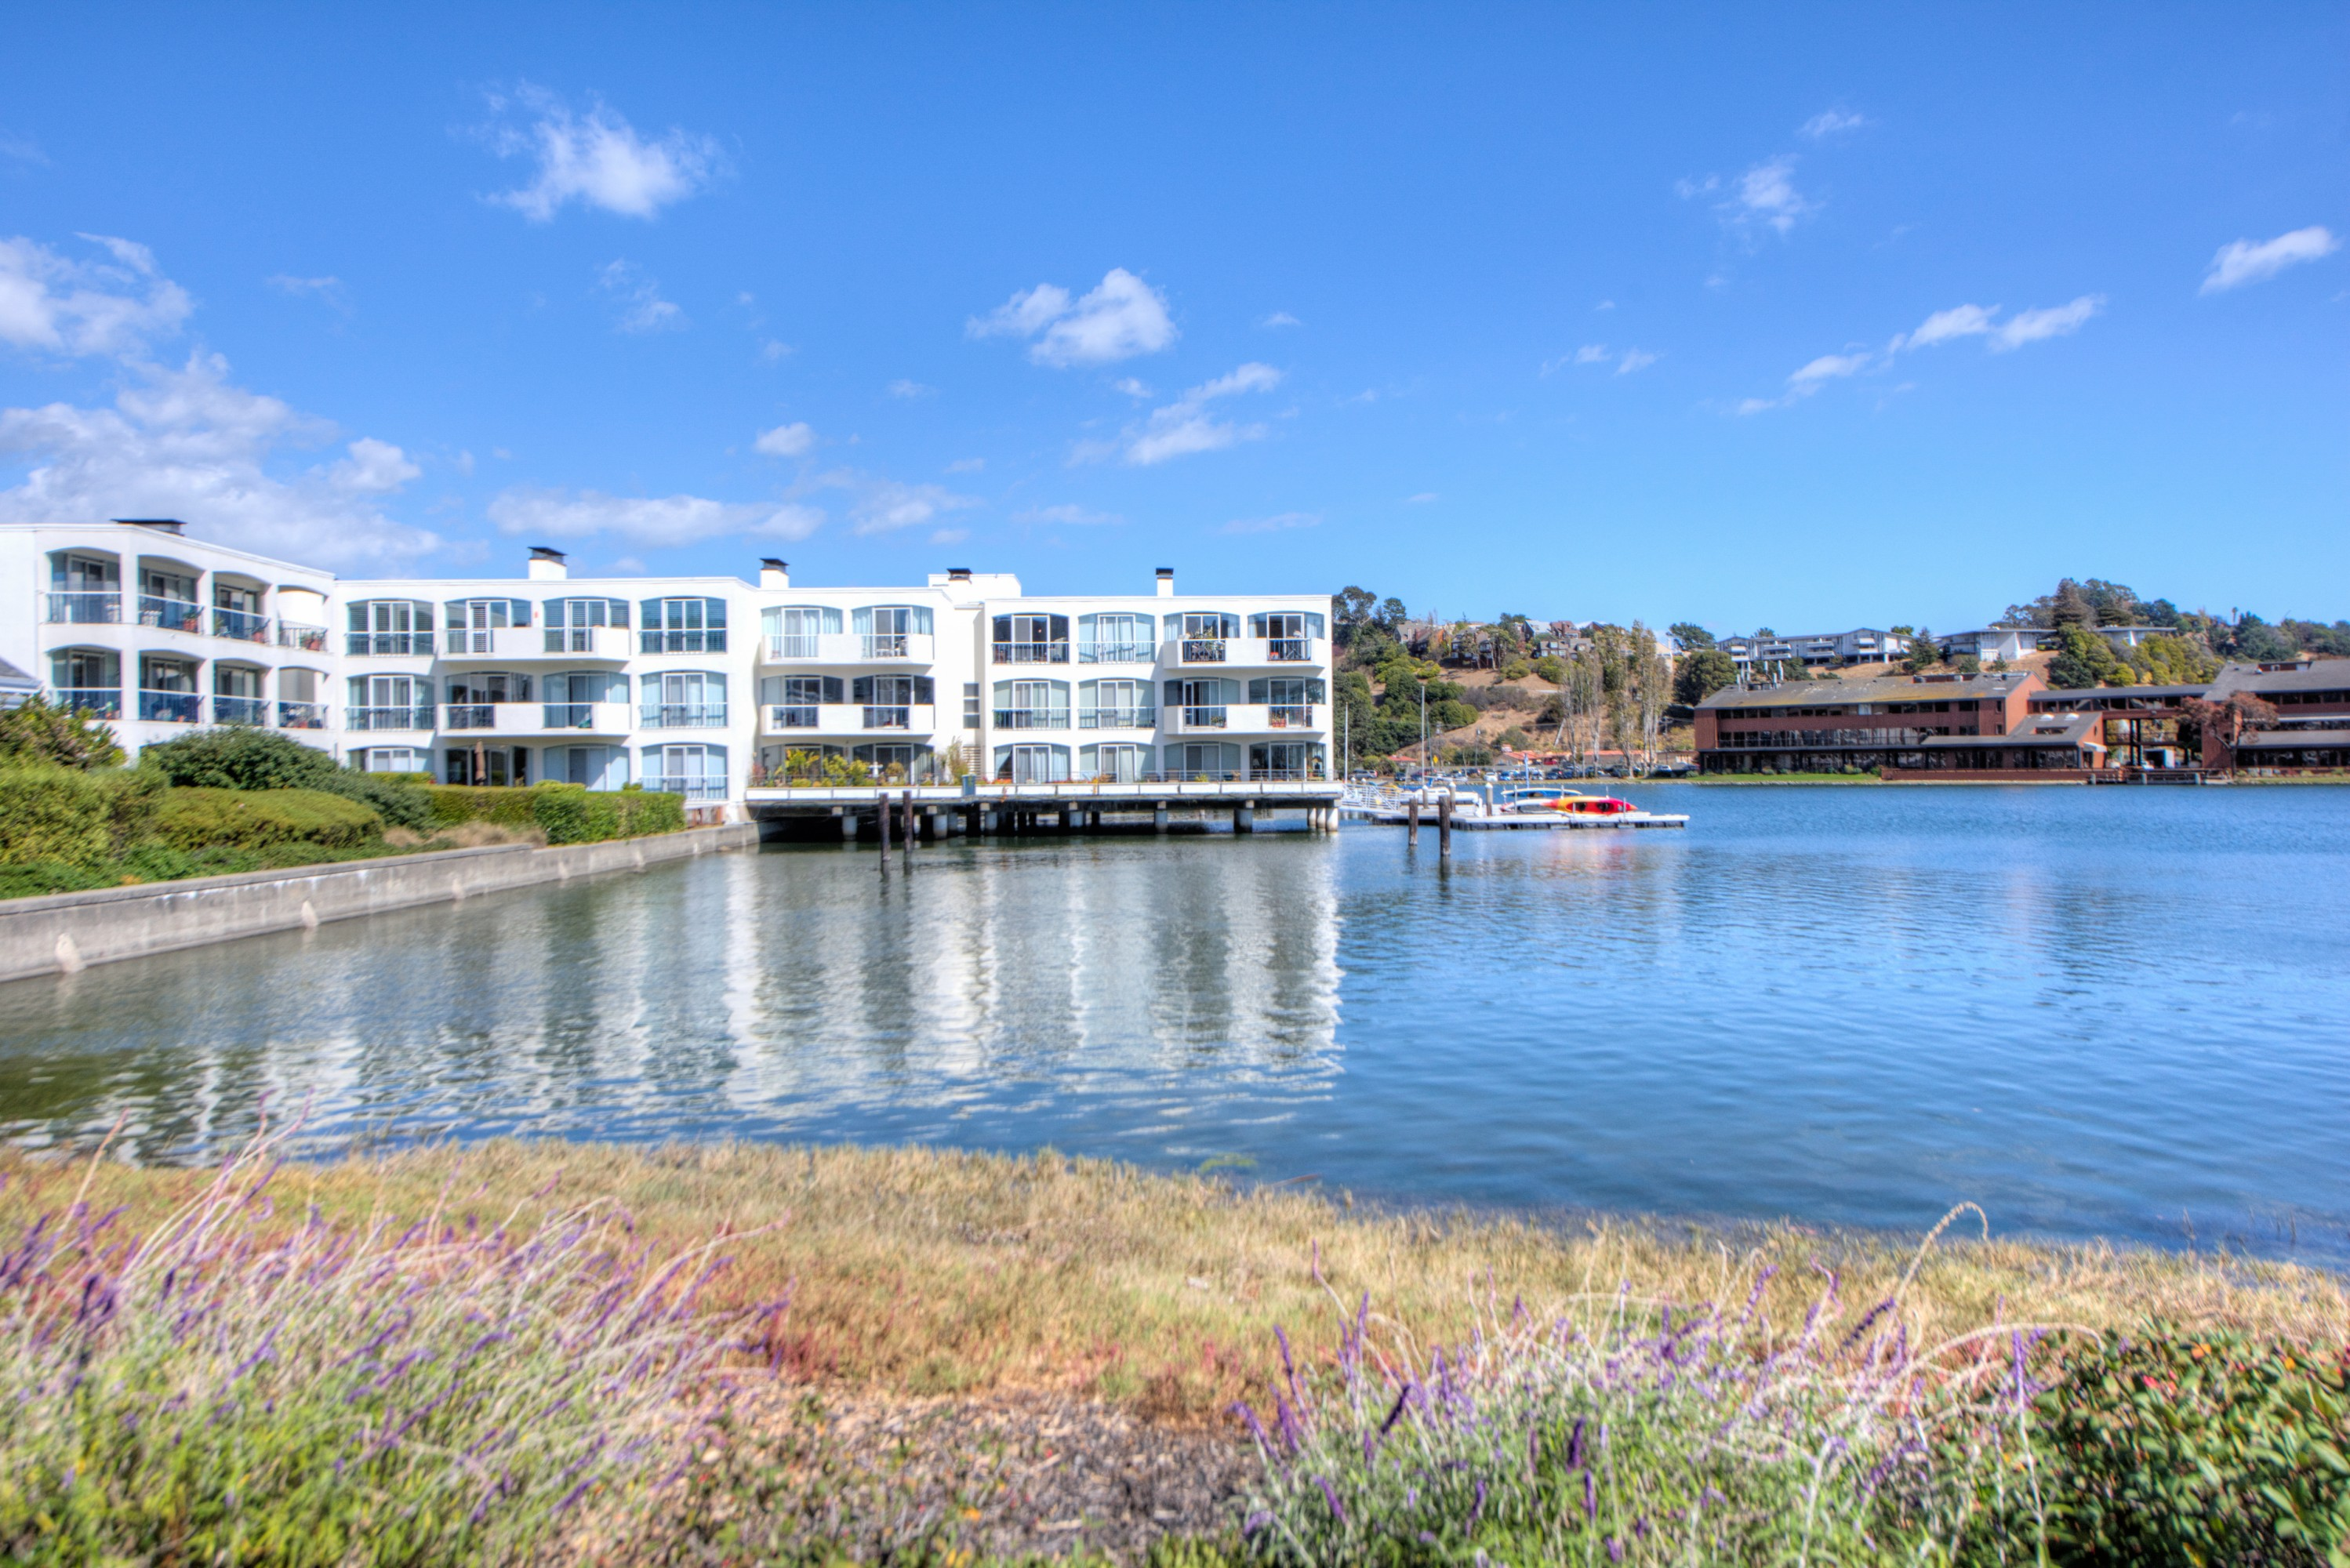 Casa Unifamiliar por un Venta en Stunning Waterfront Penthouse with Boat Dock 5331 Shelter Bay Avenue Mill Valley, California, 94941 Estados Unidos